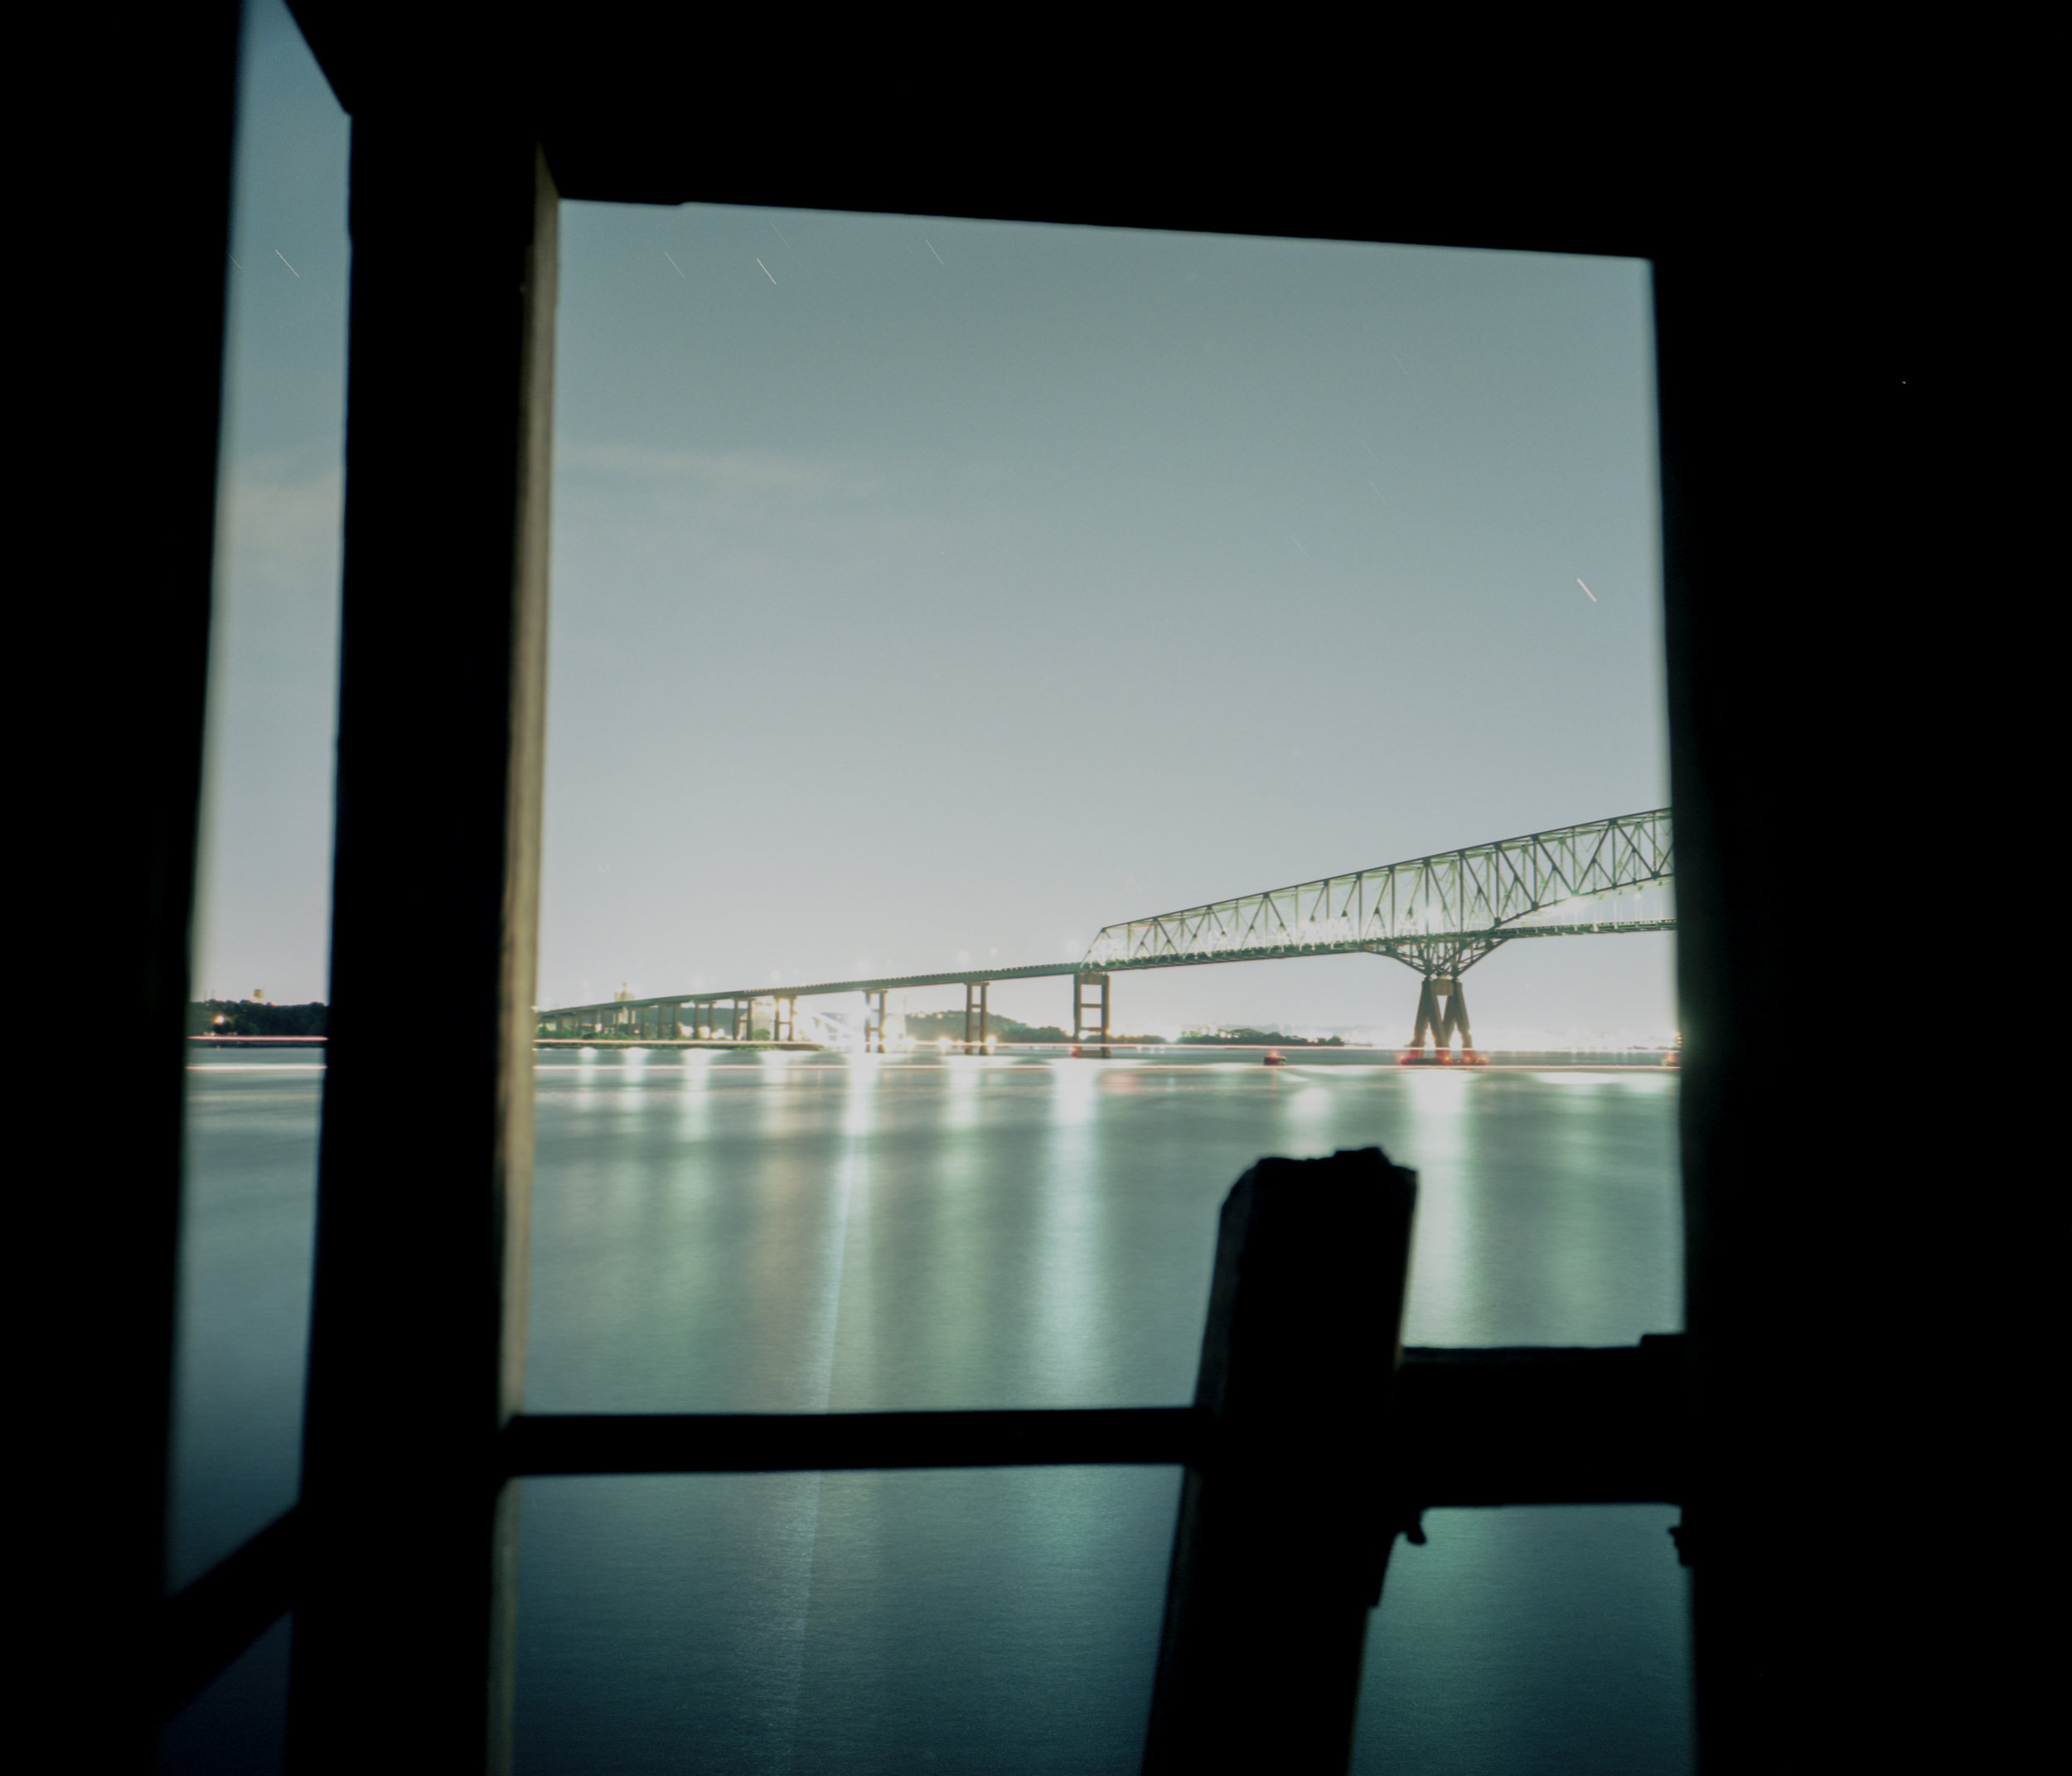 Key Bridge from inside the Lighthouse